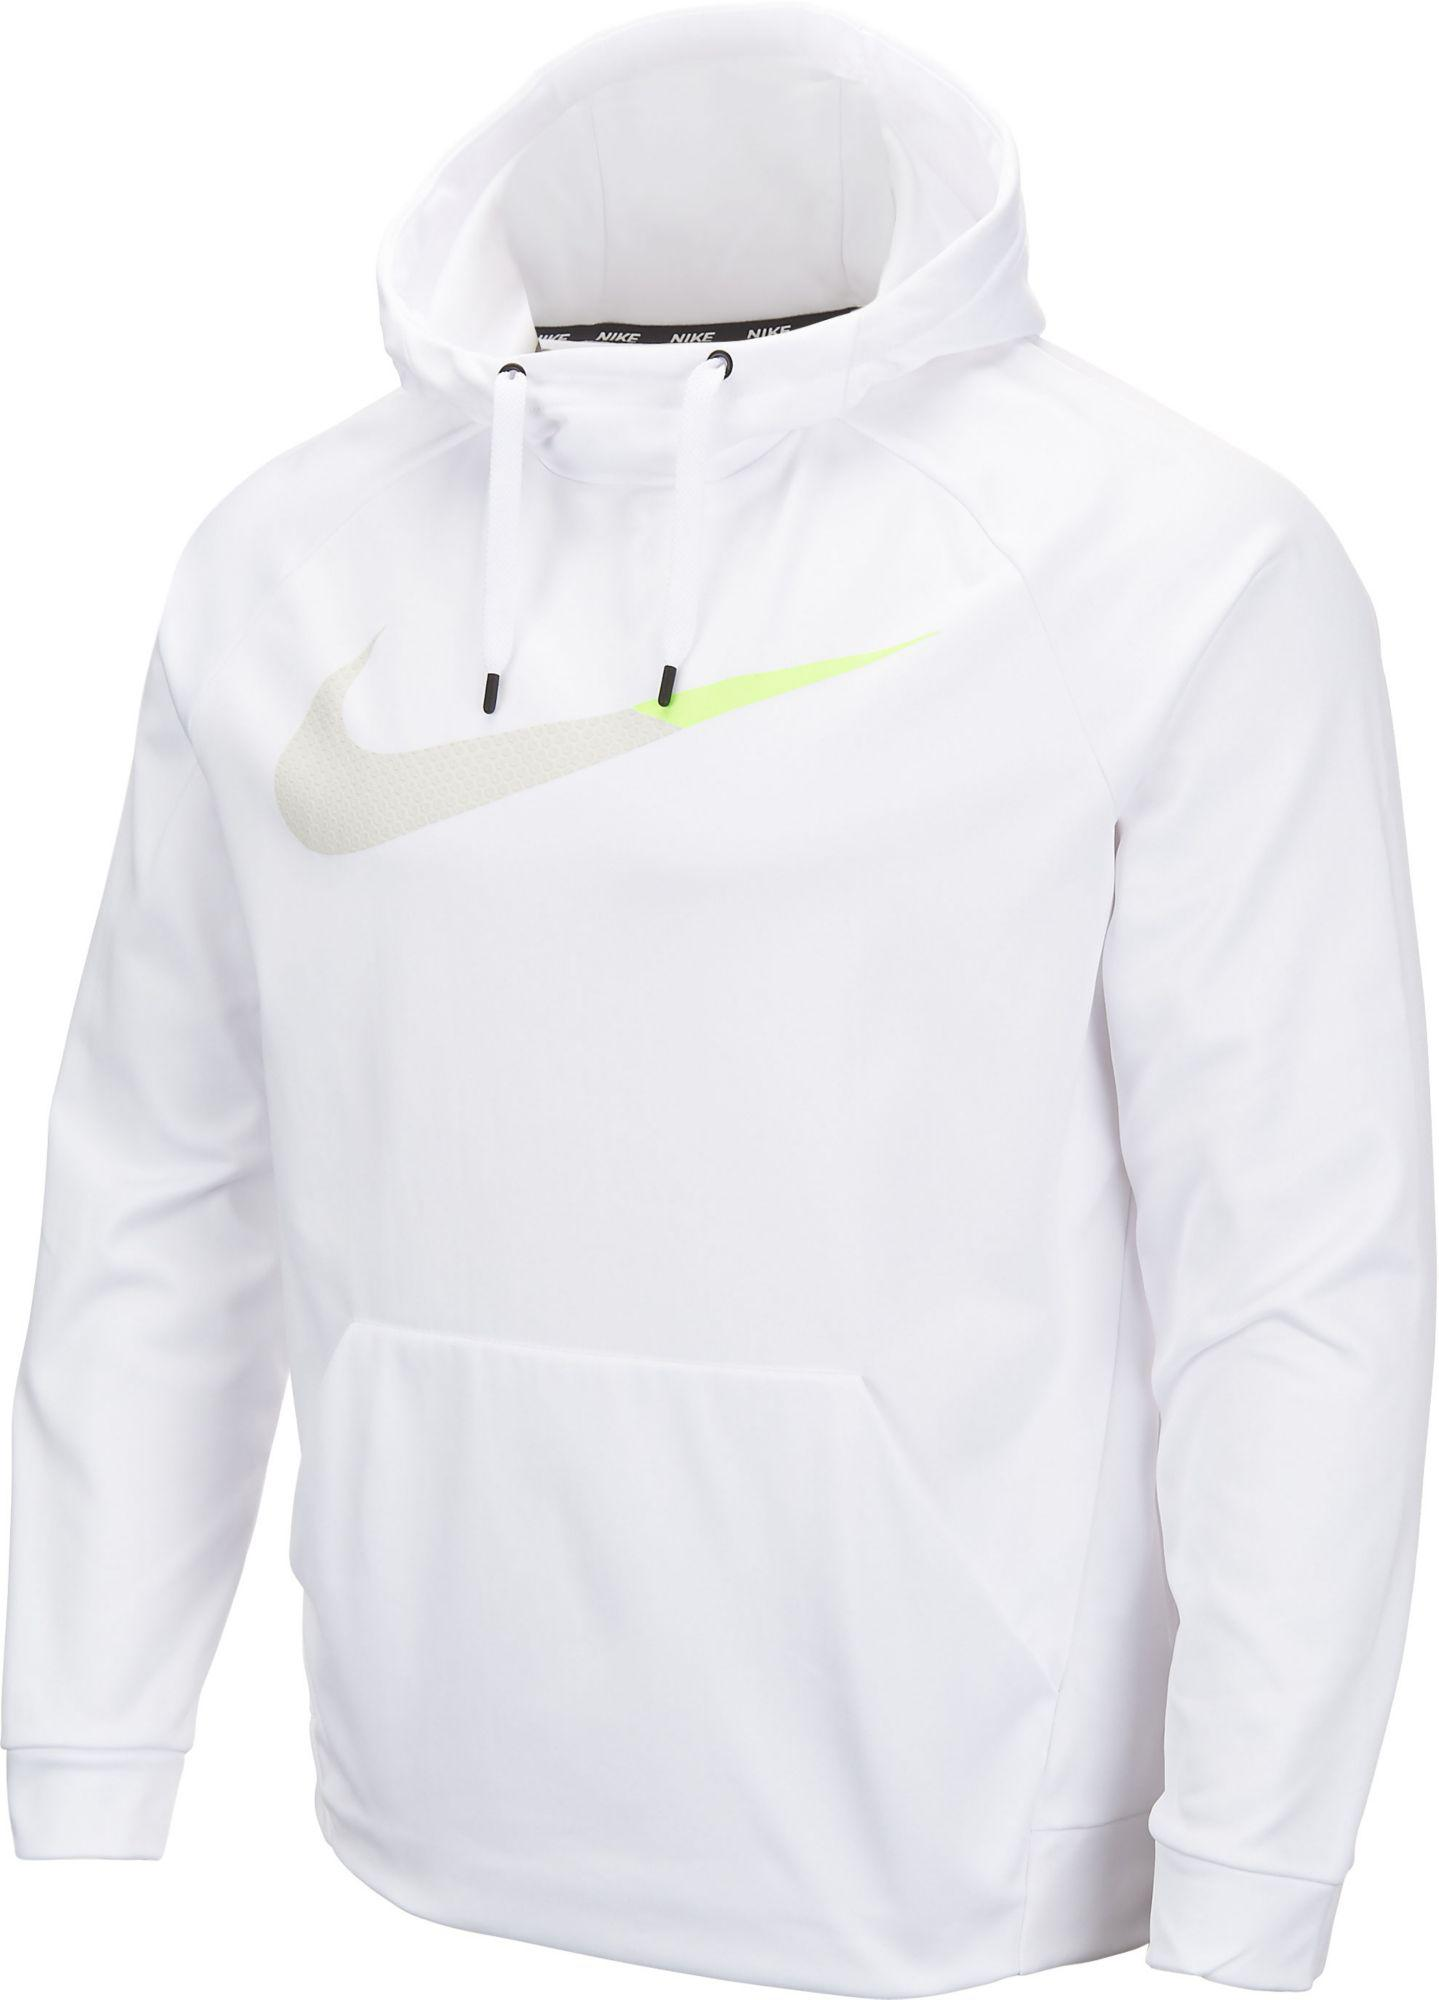 Mens Nike White Sweatshirts